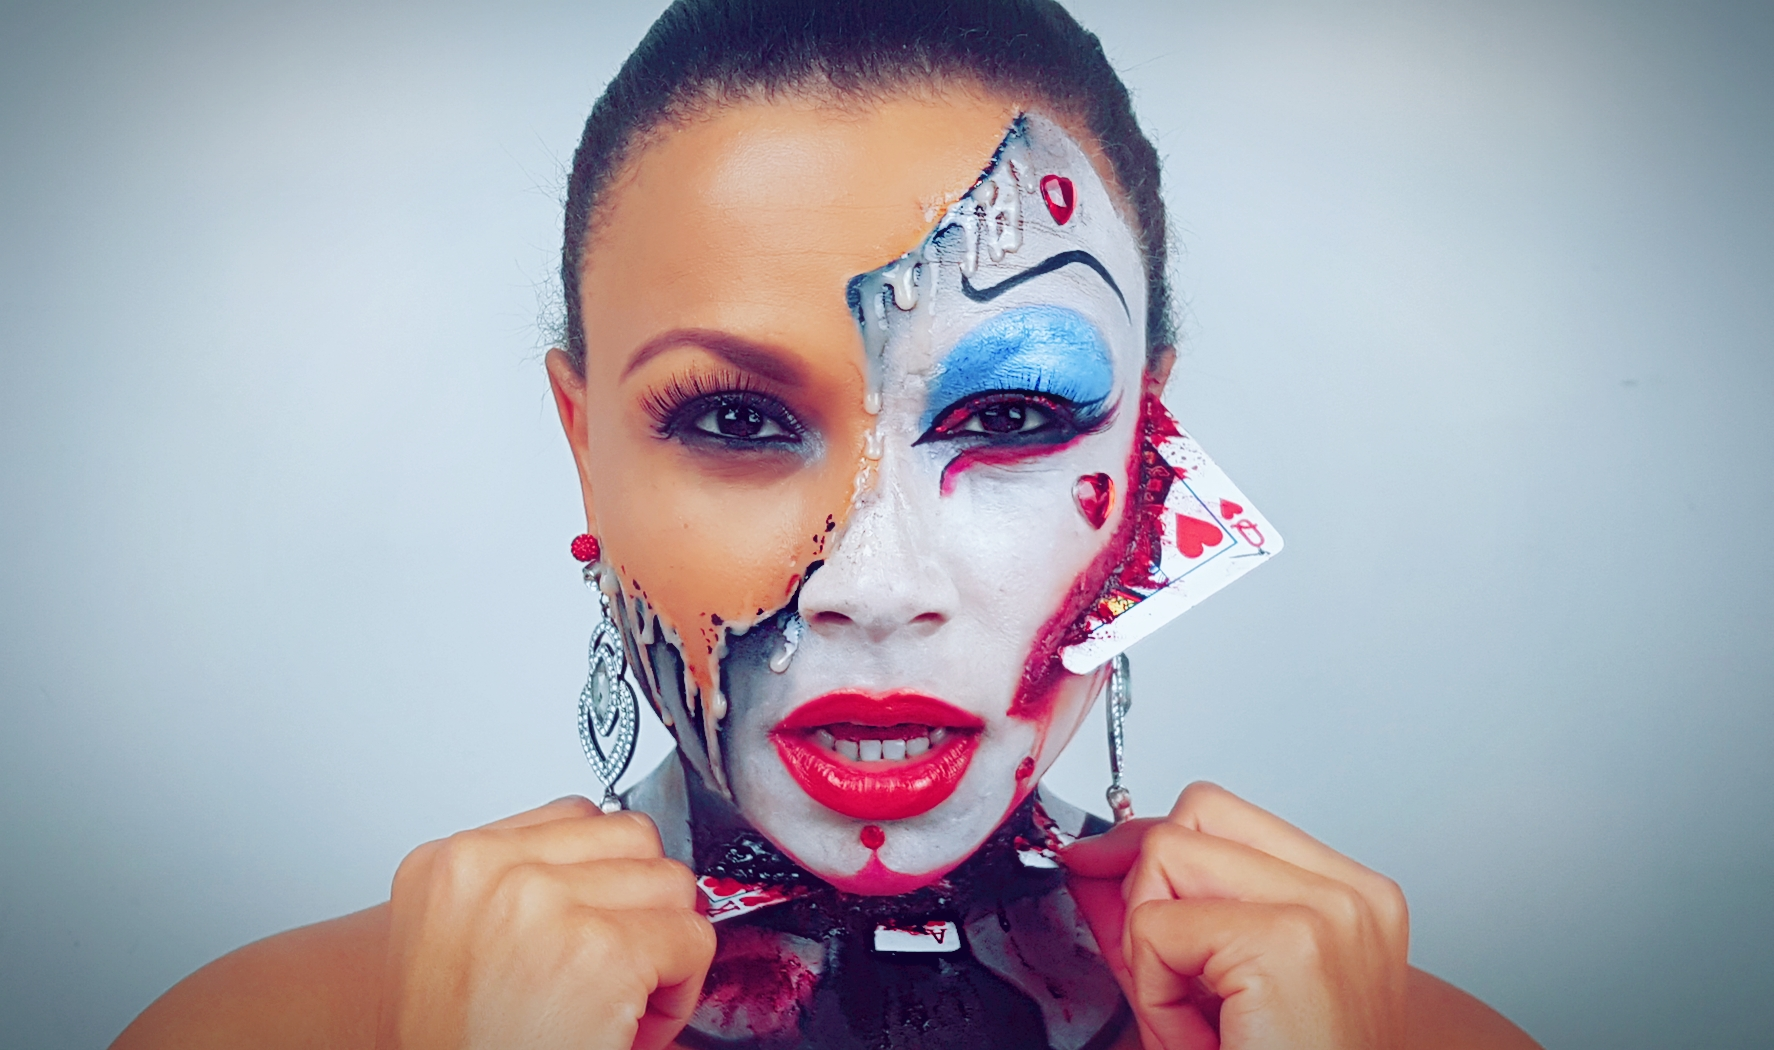 Half Queen of Hearts & Dripping Face